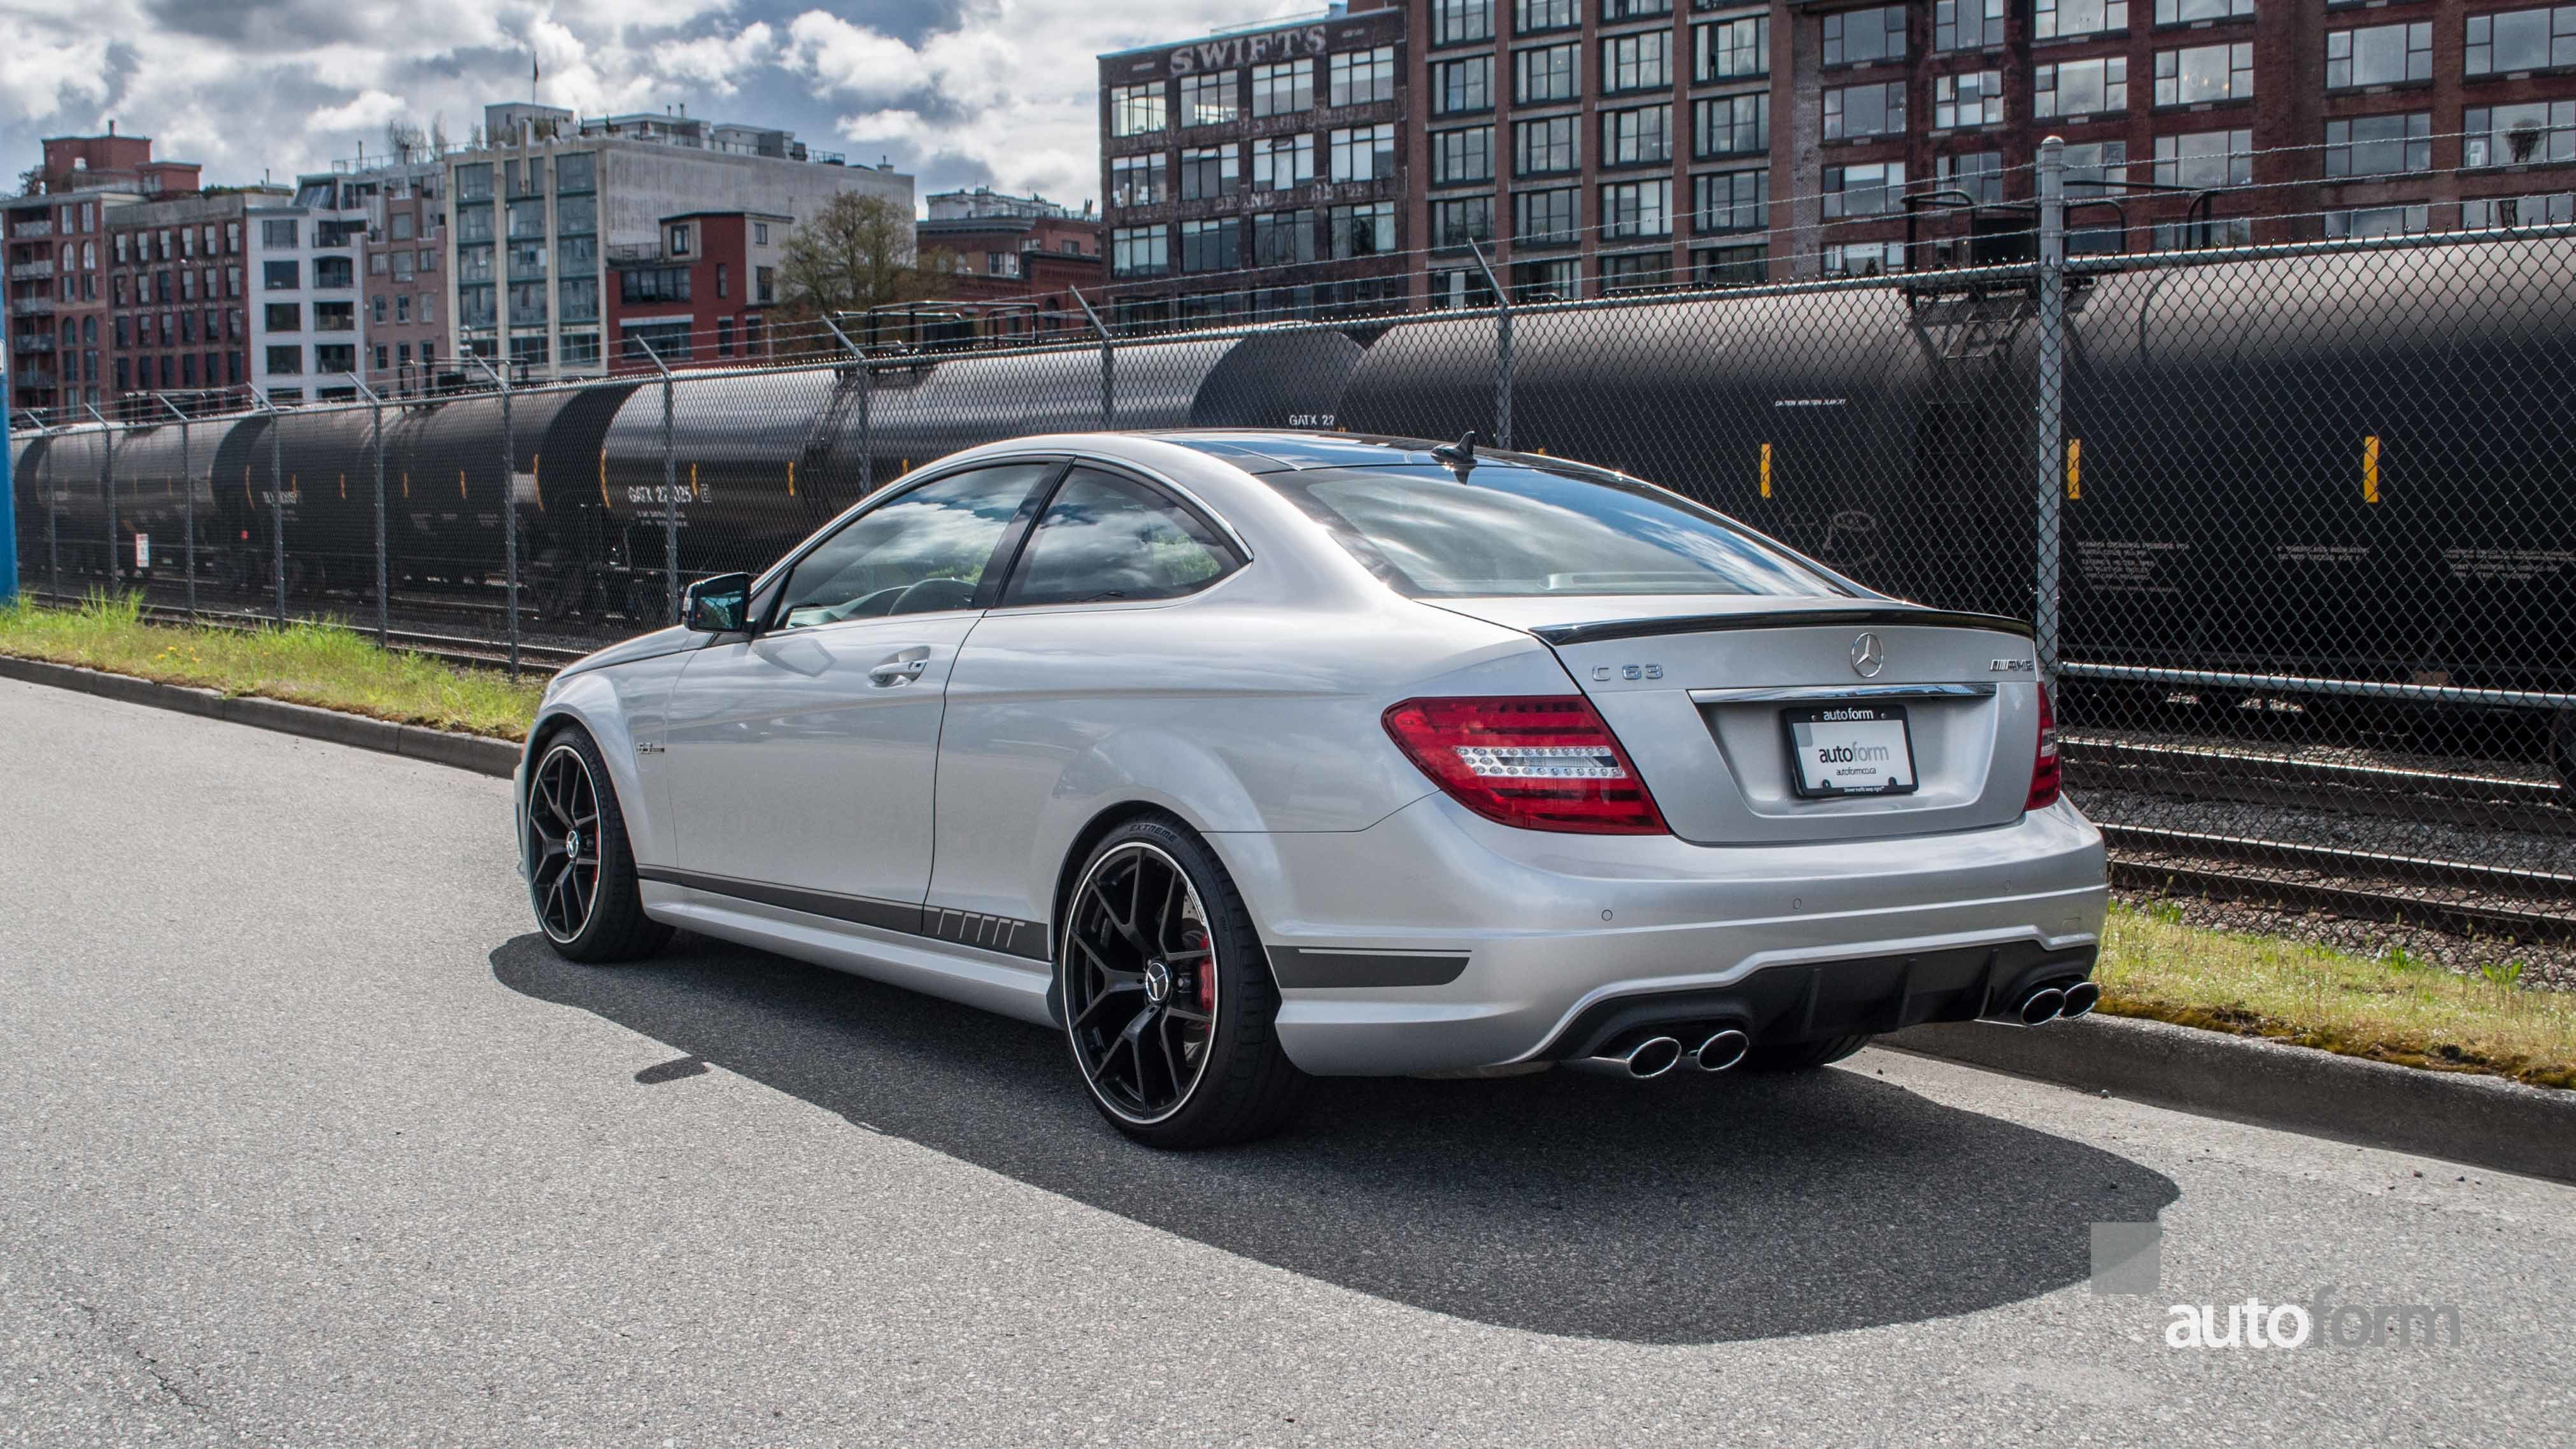 2014 mercedes benz c63 amg 507 edition autoform for Mercedes benz c63 amg